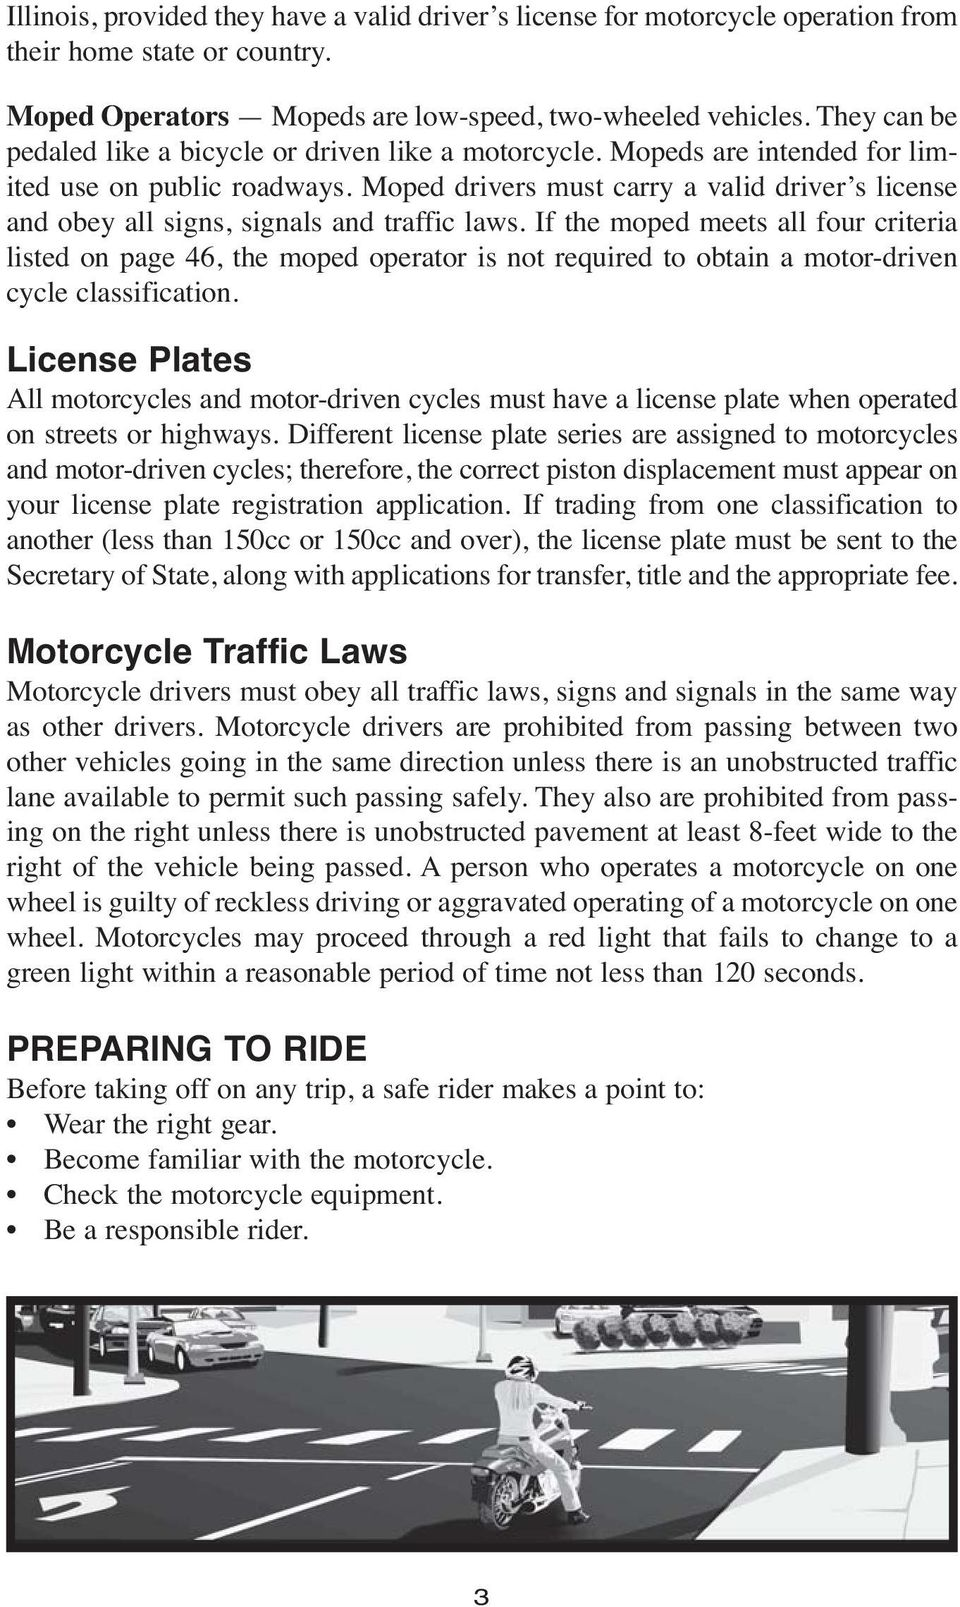 Moped drivers must carry a valid driver s license and obey all signs, signals and traffic laws.